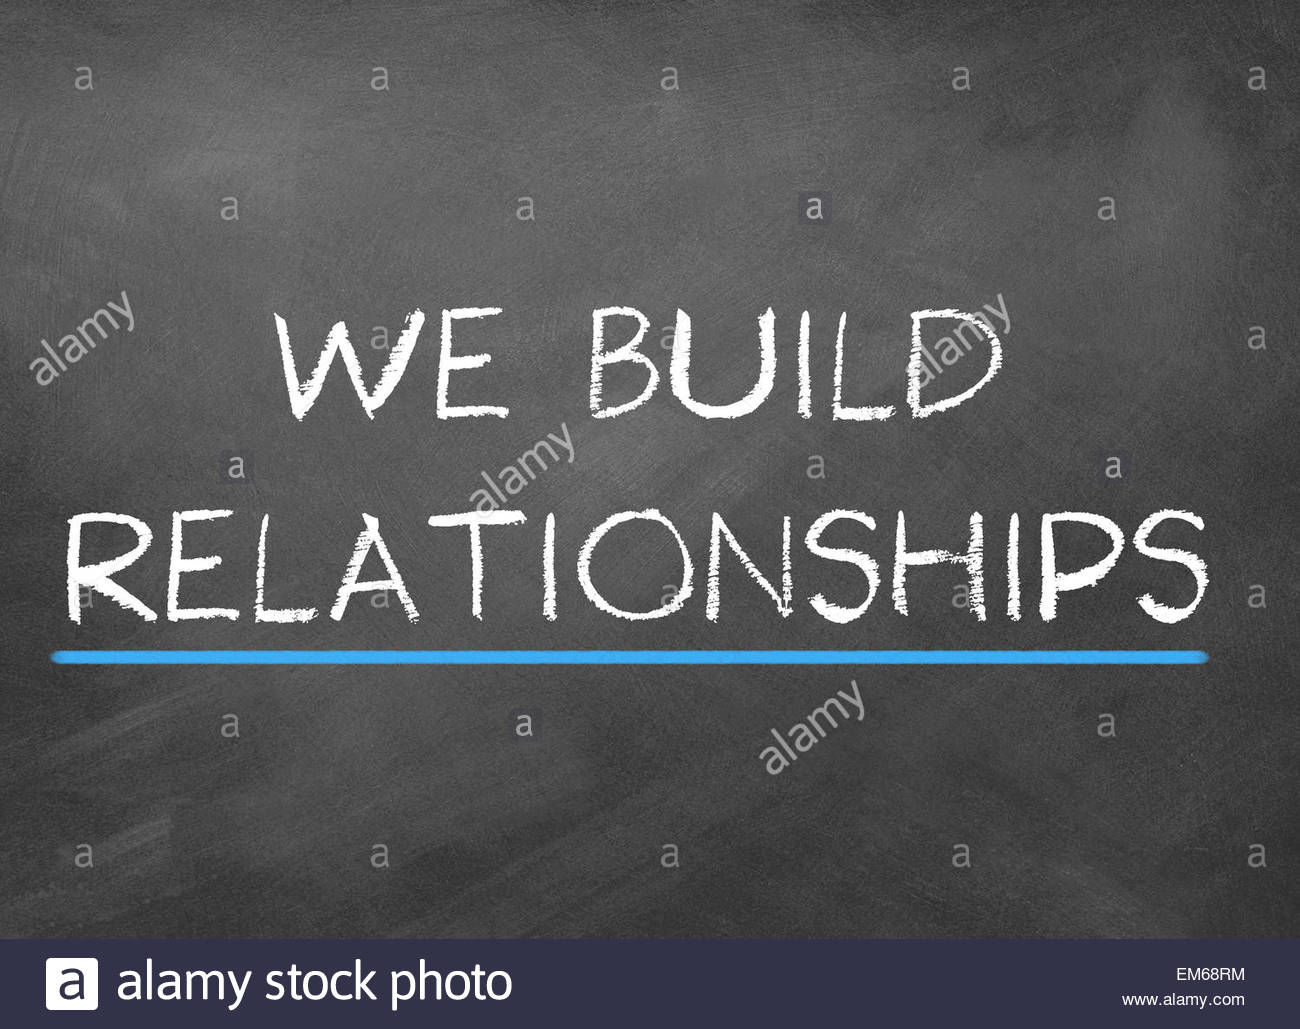 we build relationships - Stock Image